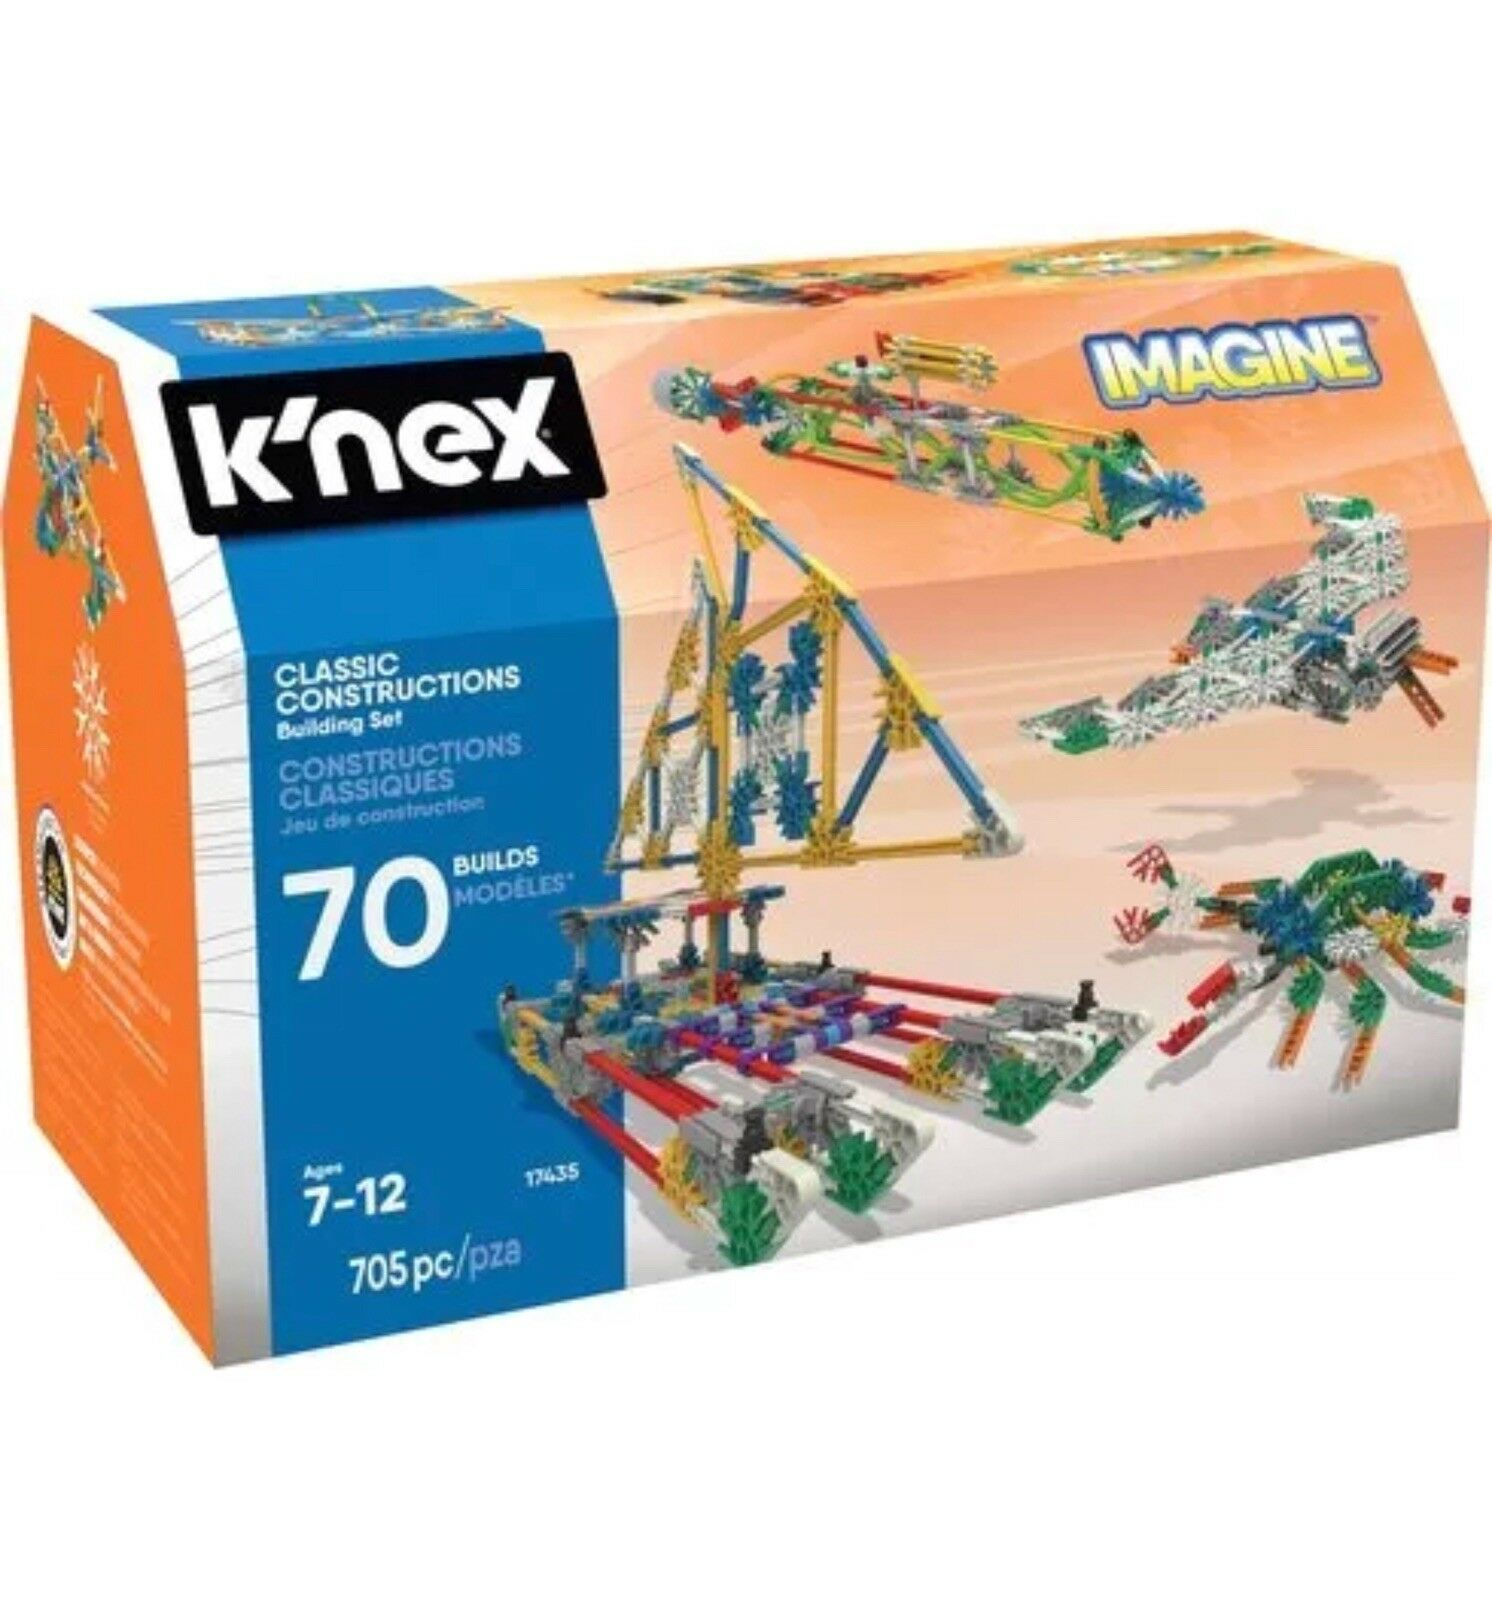 K'NEX - Classic Constructions - 70 Model Building Set